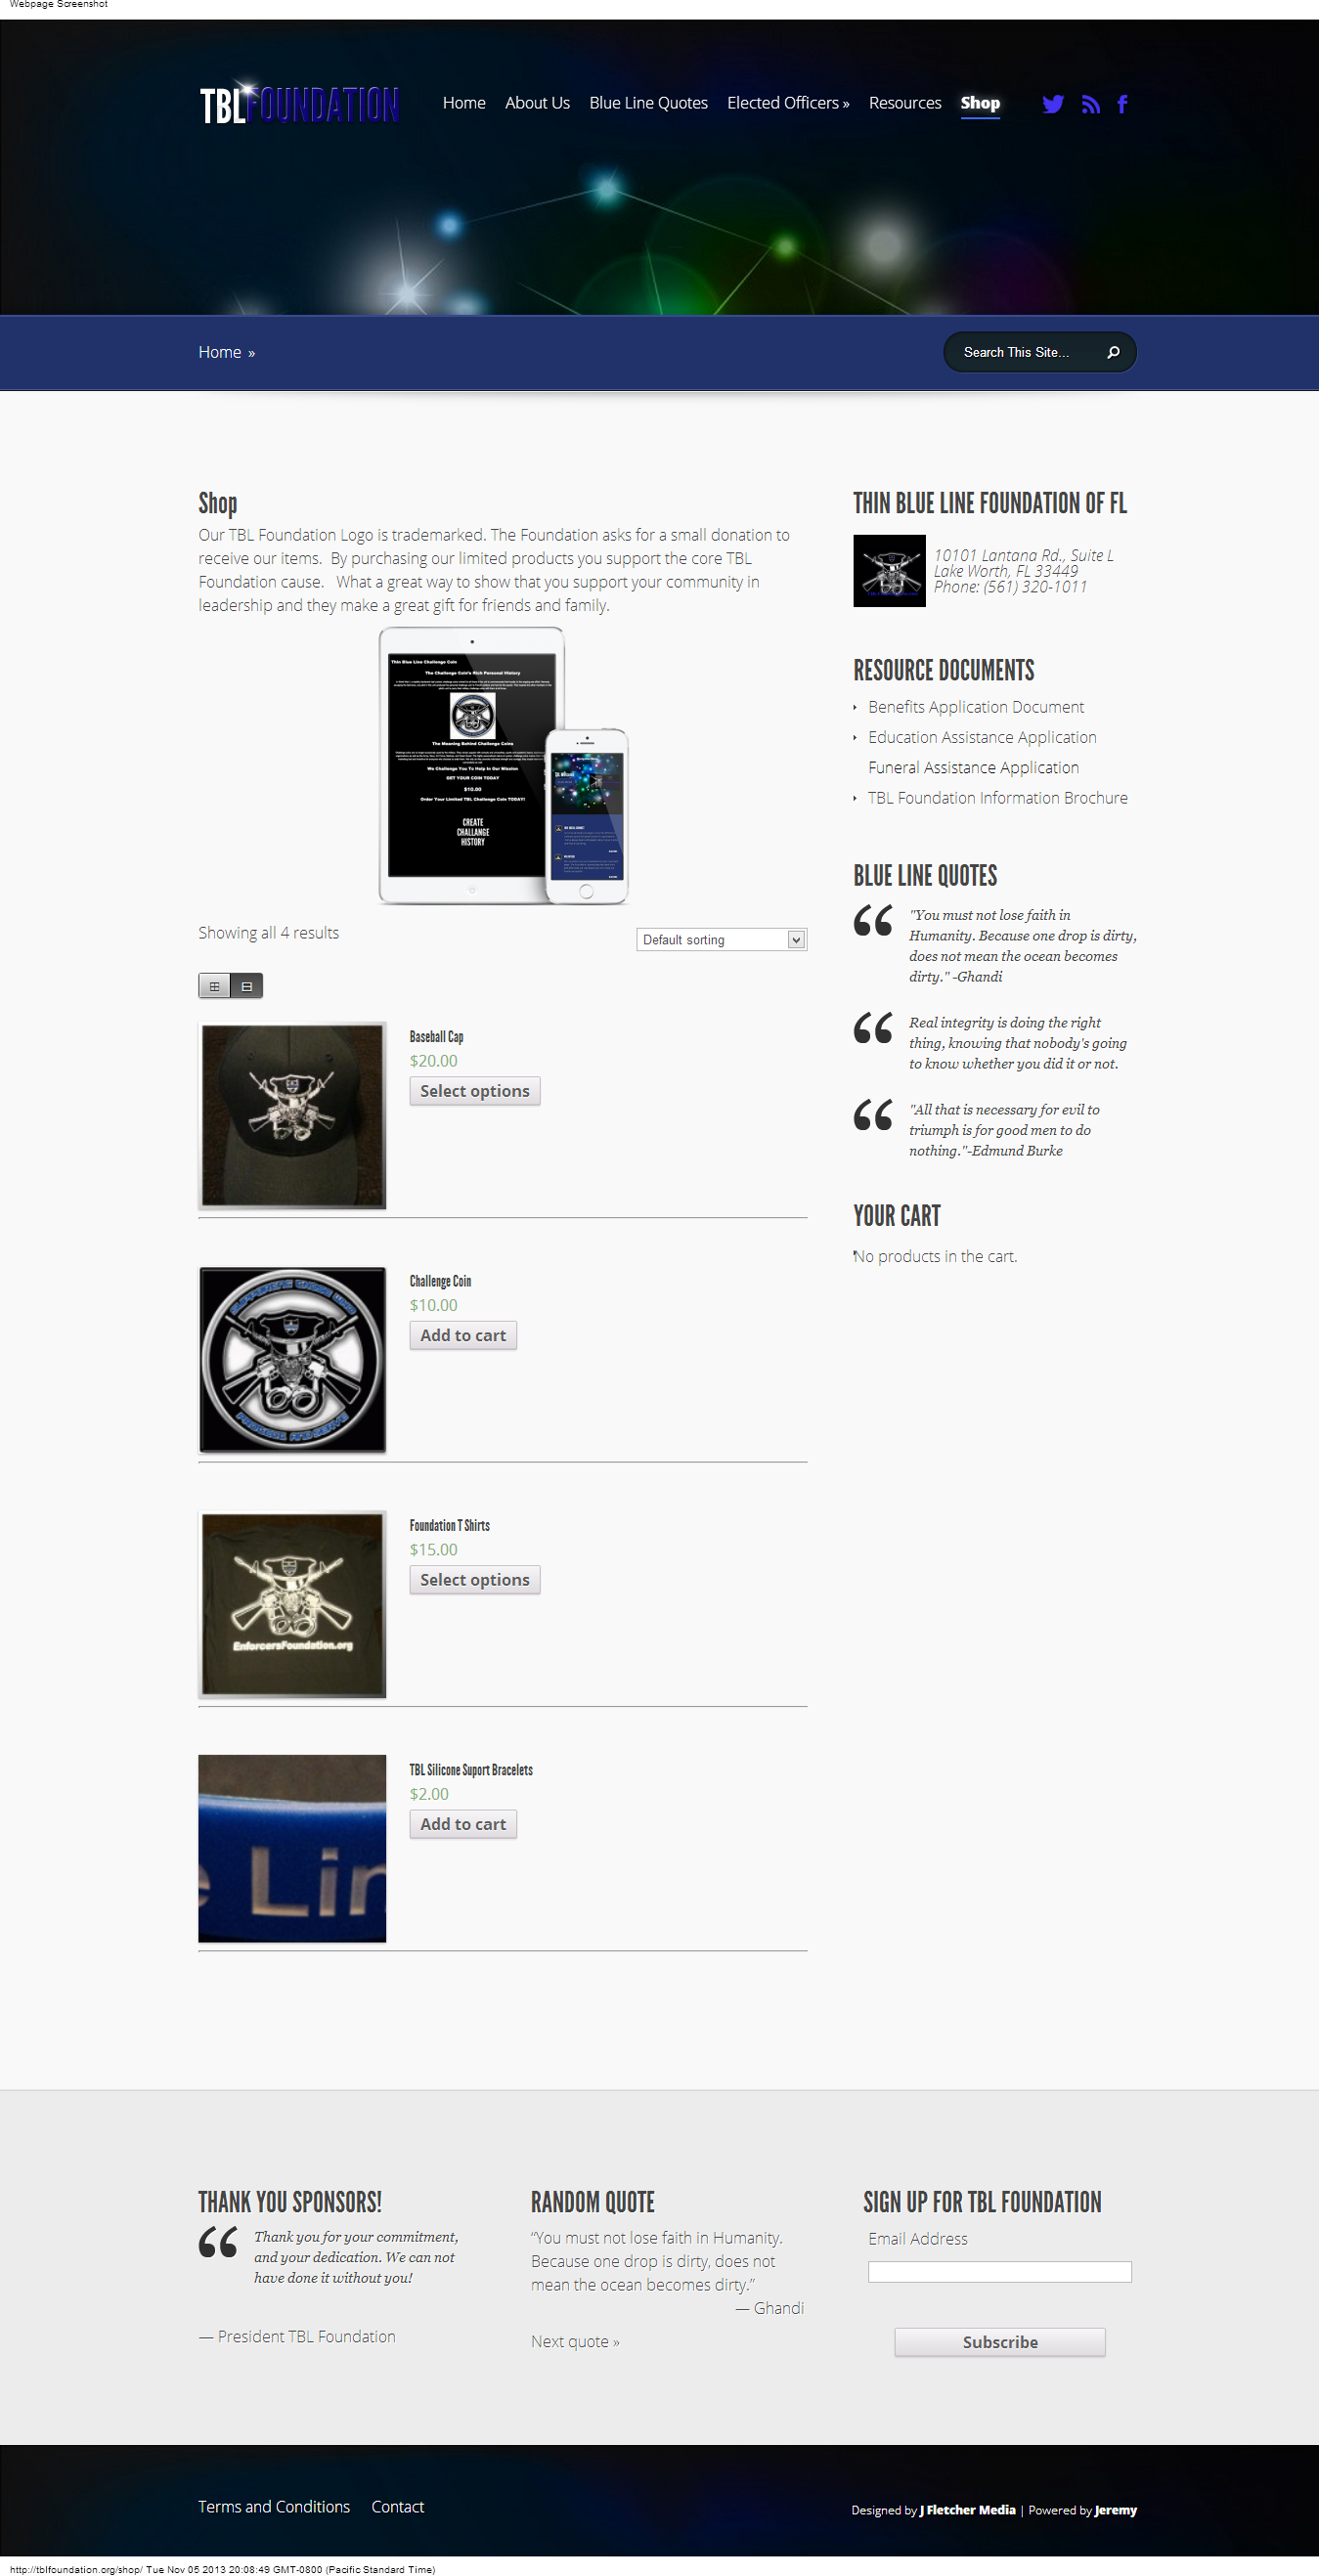 The new Store Page for Thin Blue Line Foundation of FL